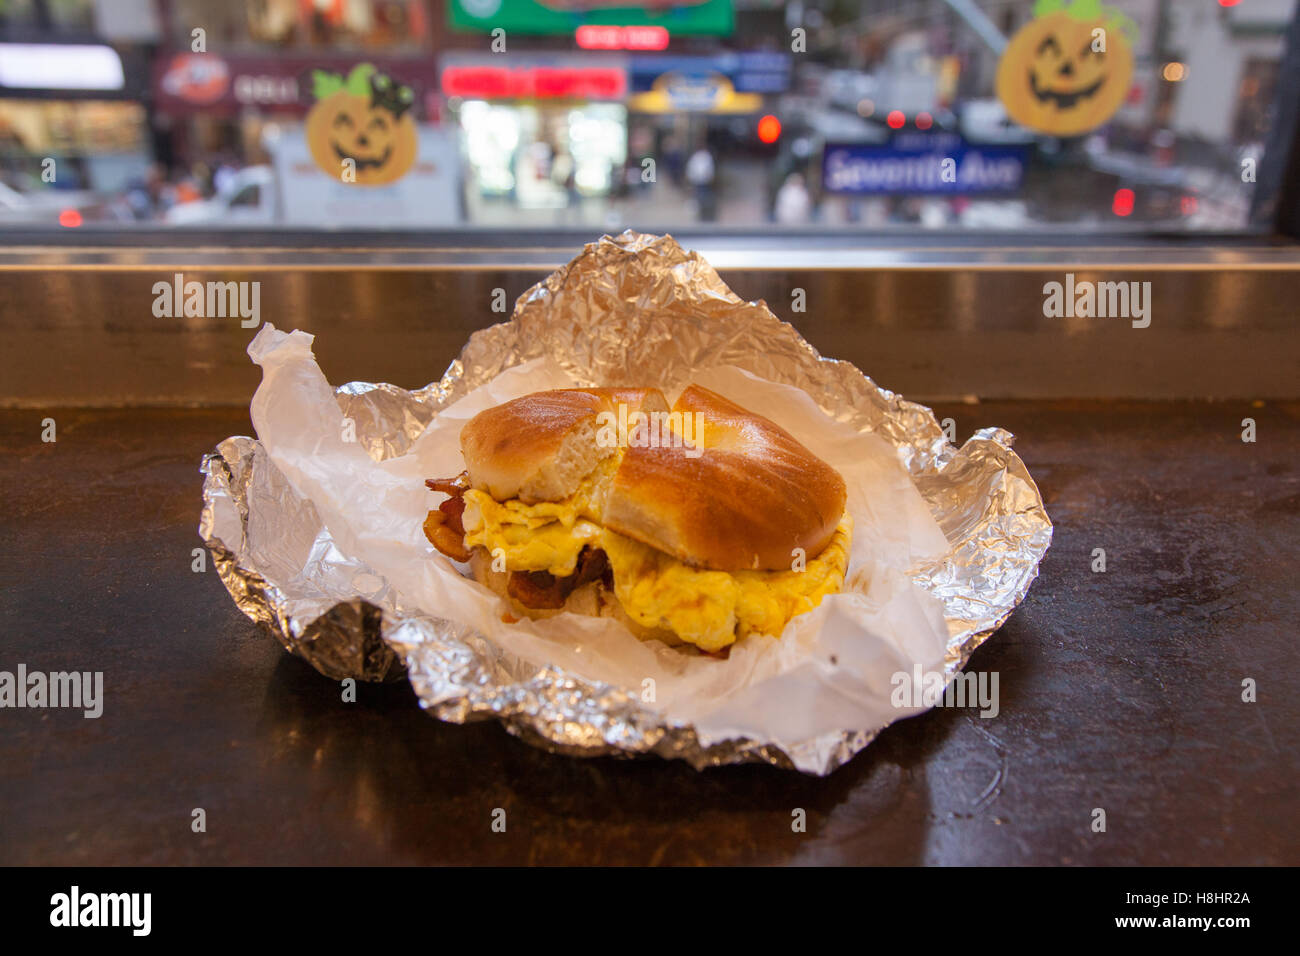 Bacon and egg toasted bagel at the Dali Market deli on 7th Avenue, Manhattan, New York City , United States of America. - Stock Image